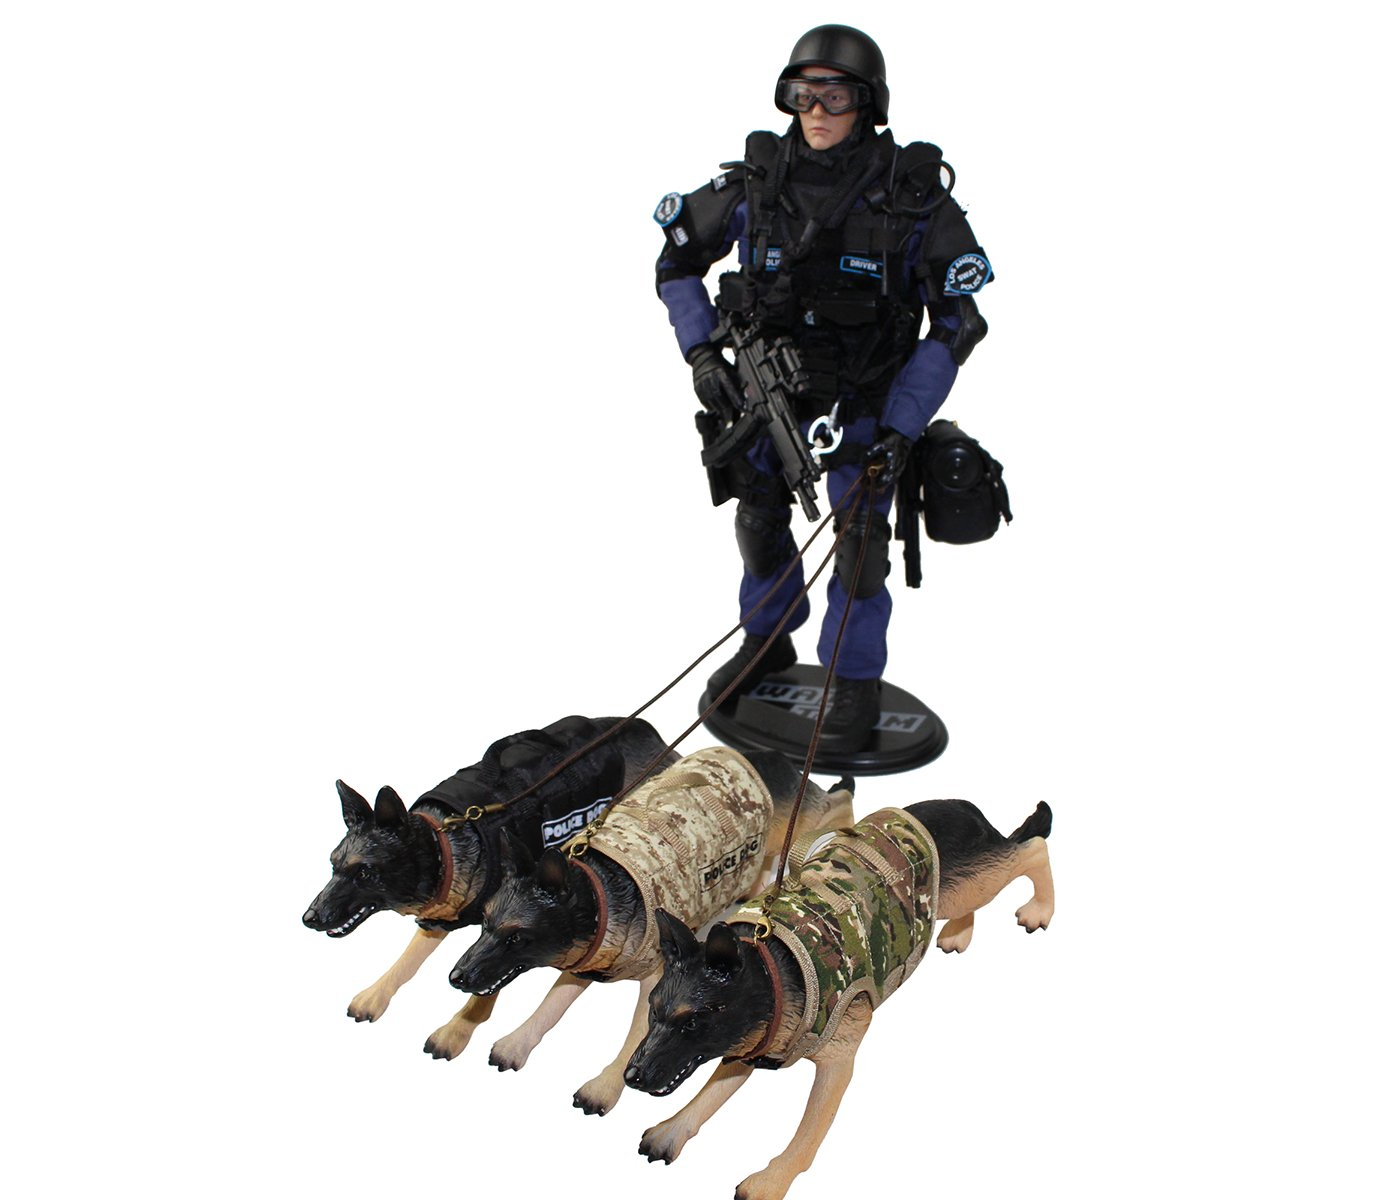 Phicen 1//6 Scale Action Figure Dogs Toy Figure Uniform Toys Dolls Scene Layout Phicen Limited